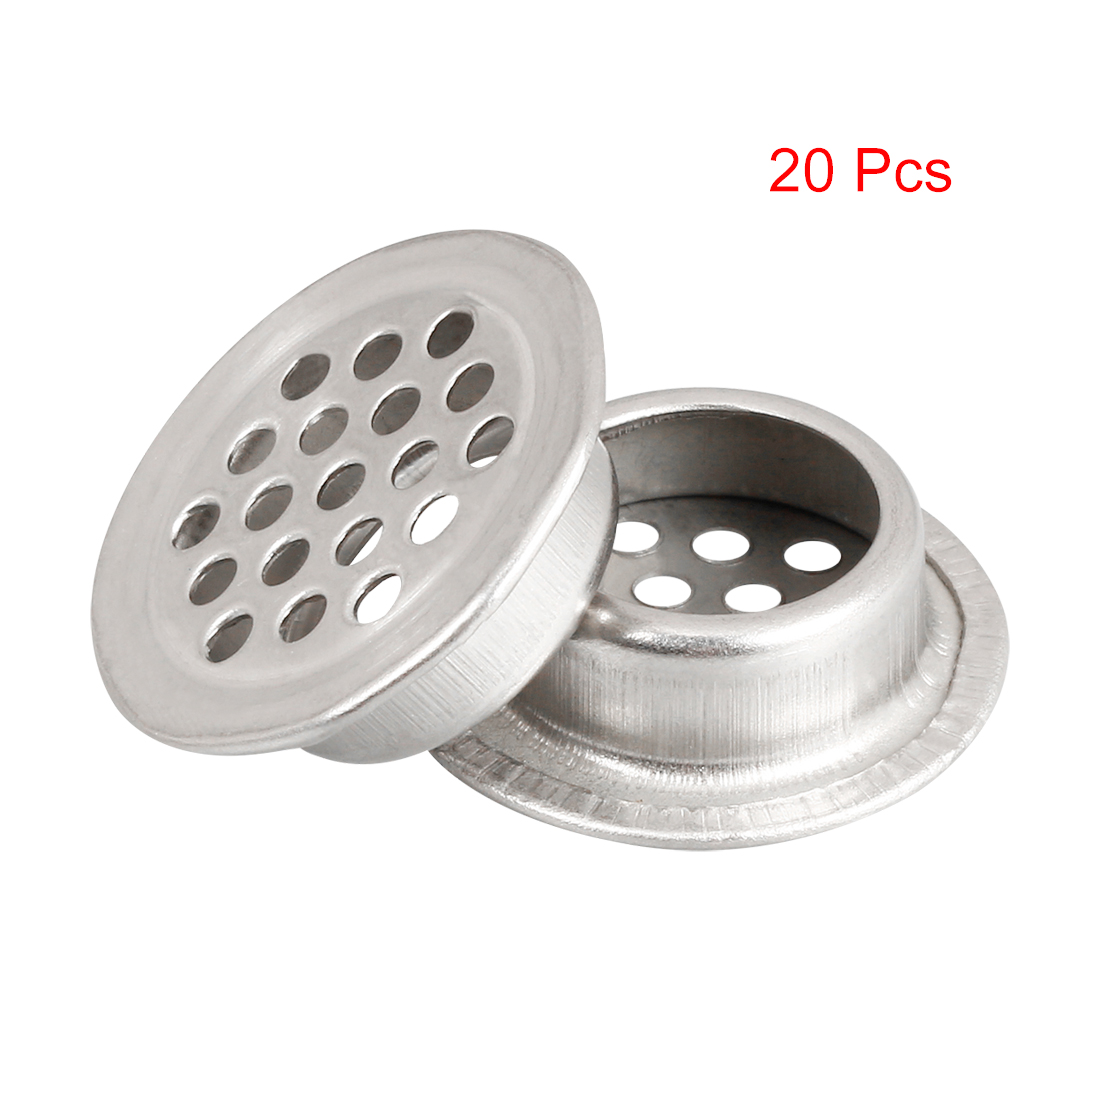 Uxcell New 20pcs Air Vent Extract Valve Grille Round Diffuser Ducting Ventilation Cover 19mm 25mm Air Vent Ventilator For Home